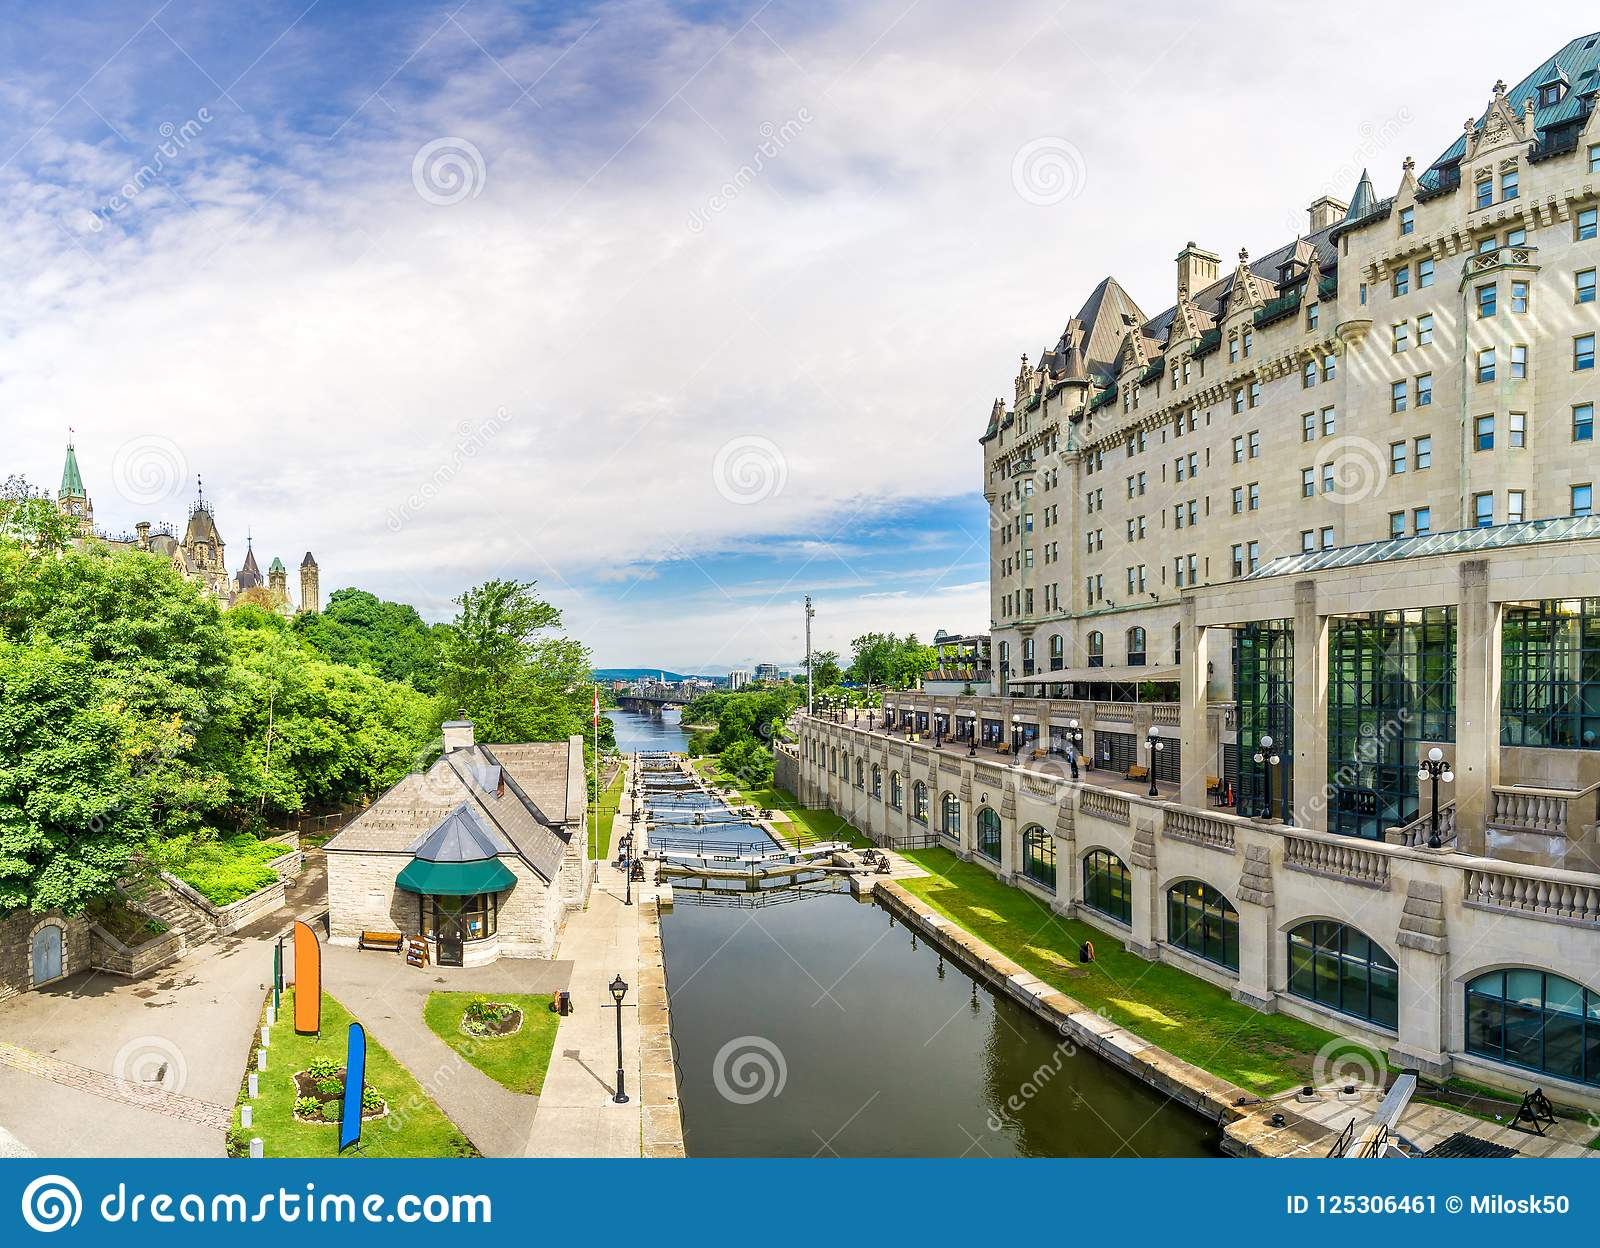 View at the Rideau Canal in Ottawa - Canada